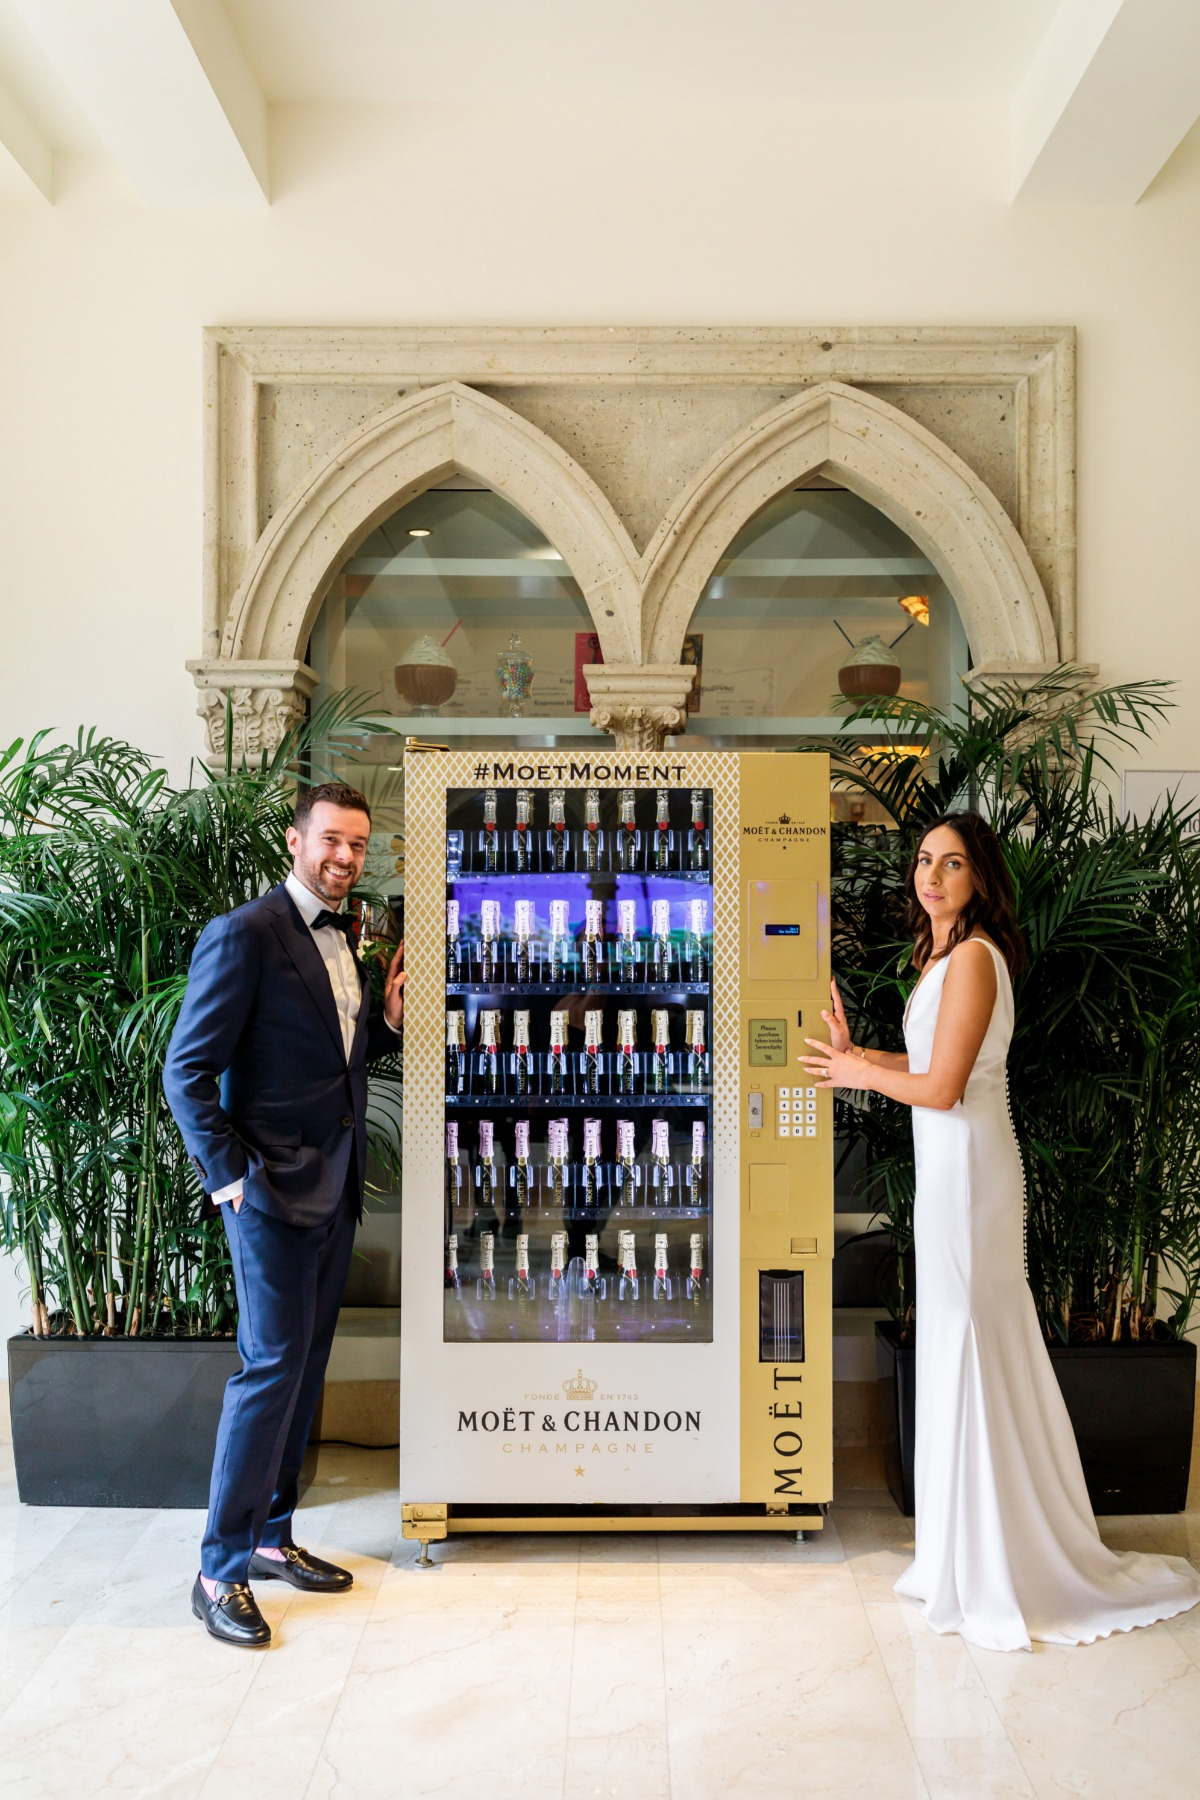 You can buy this Moet & Chandon Champagne vending machine